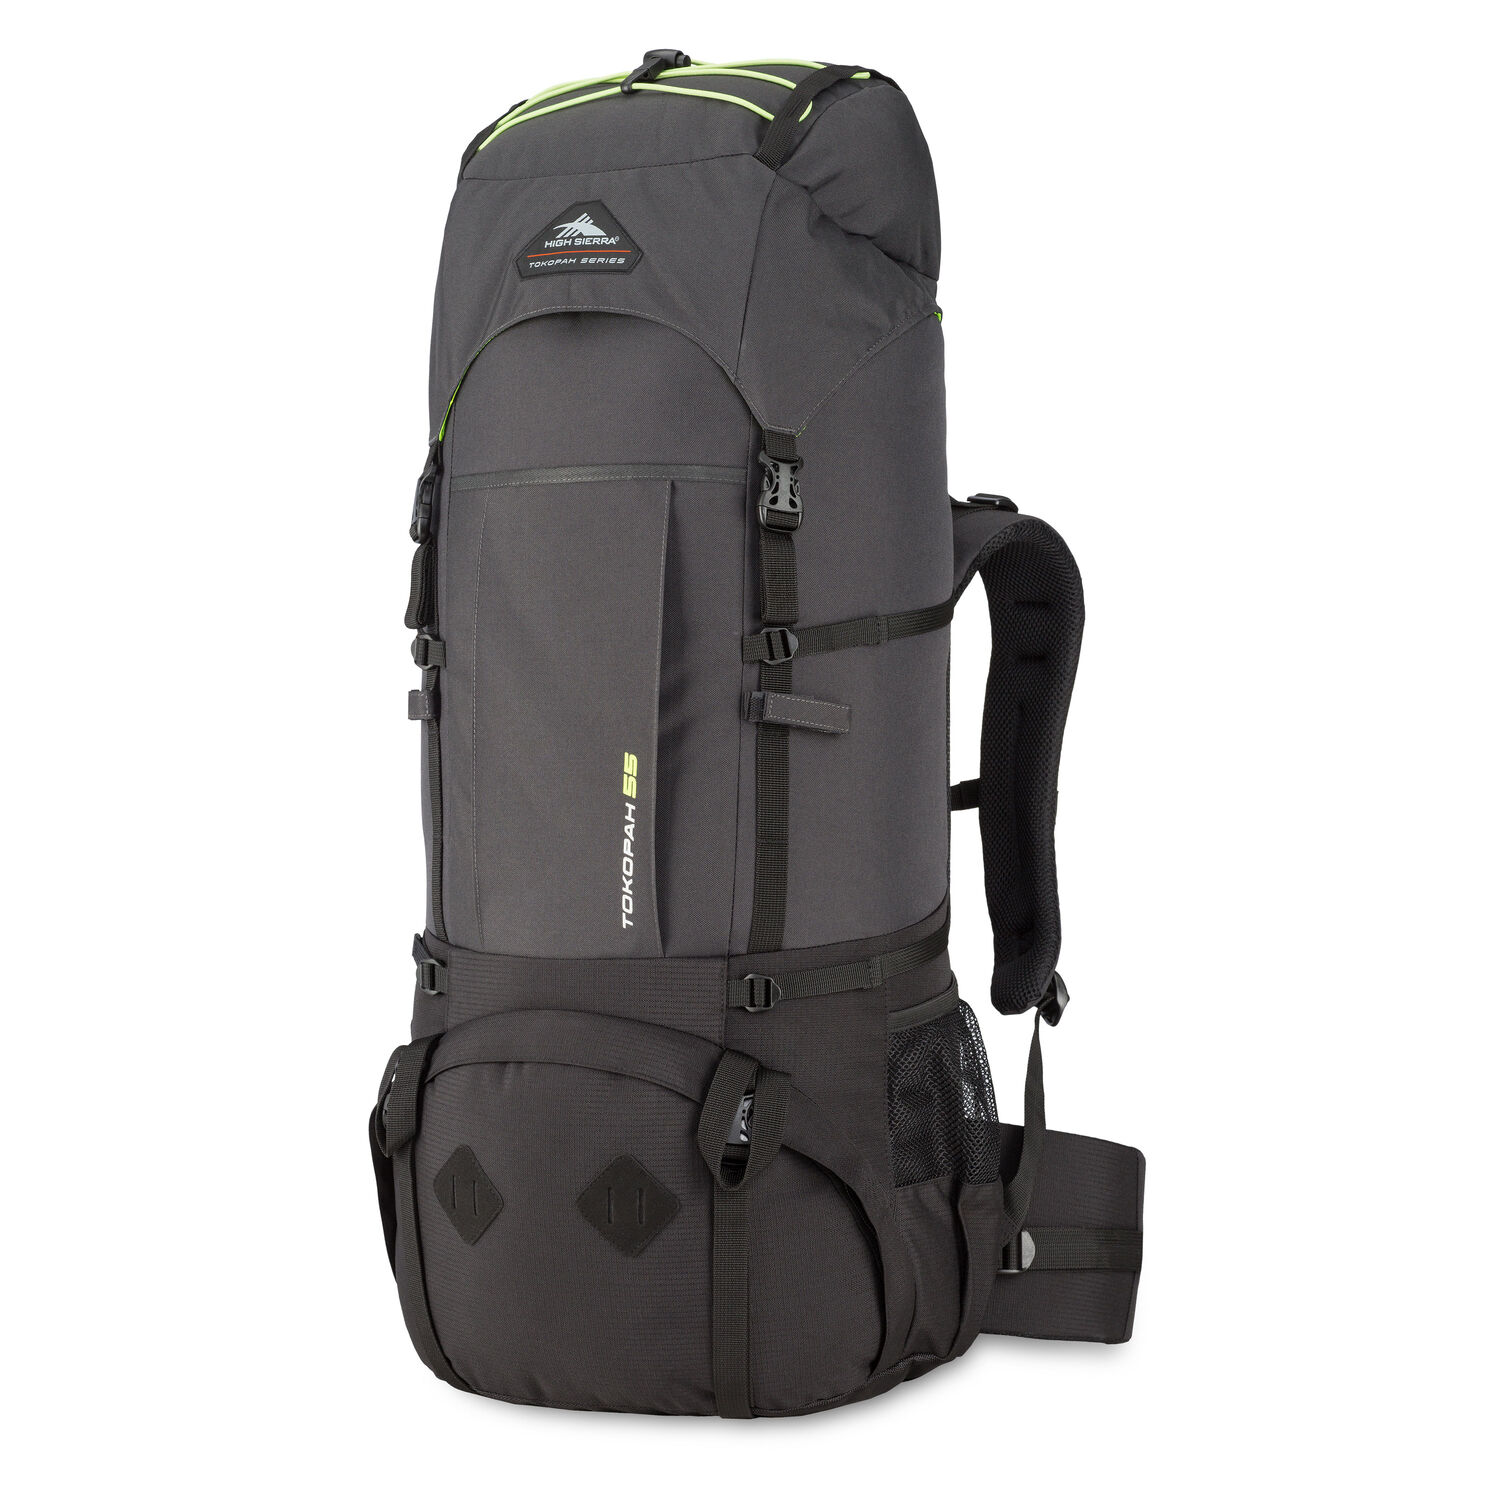 a605f952b High Sierra Tokopah 55L Pack in the color Raven/Black/Zest.